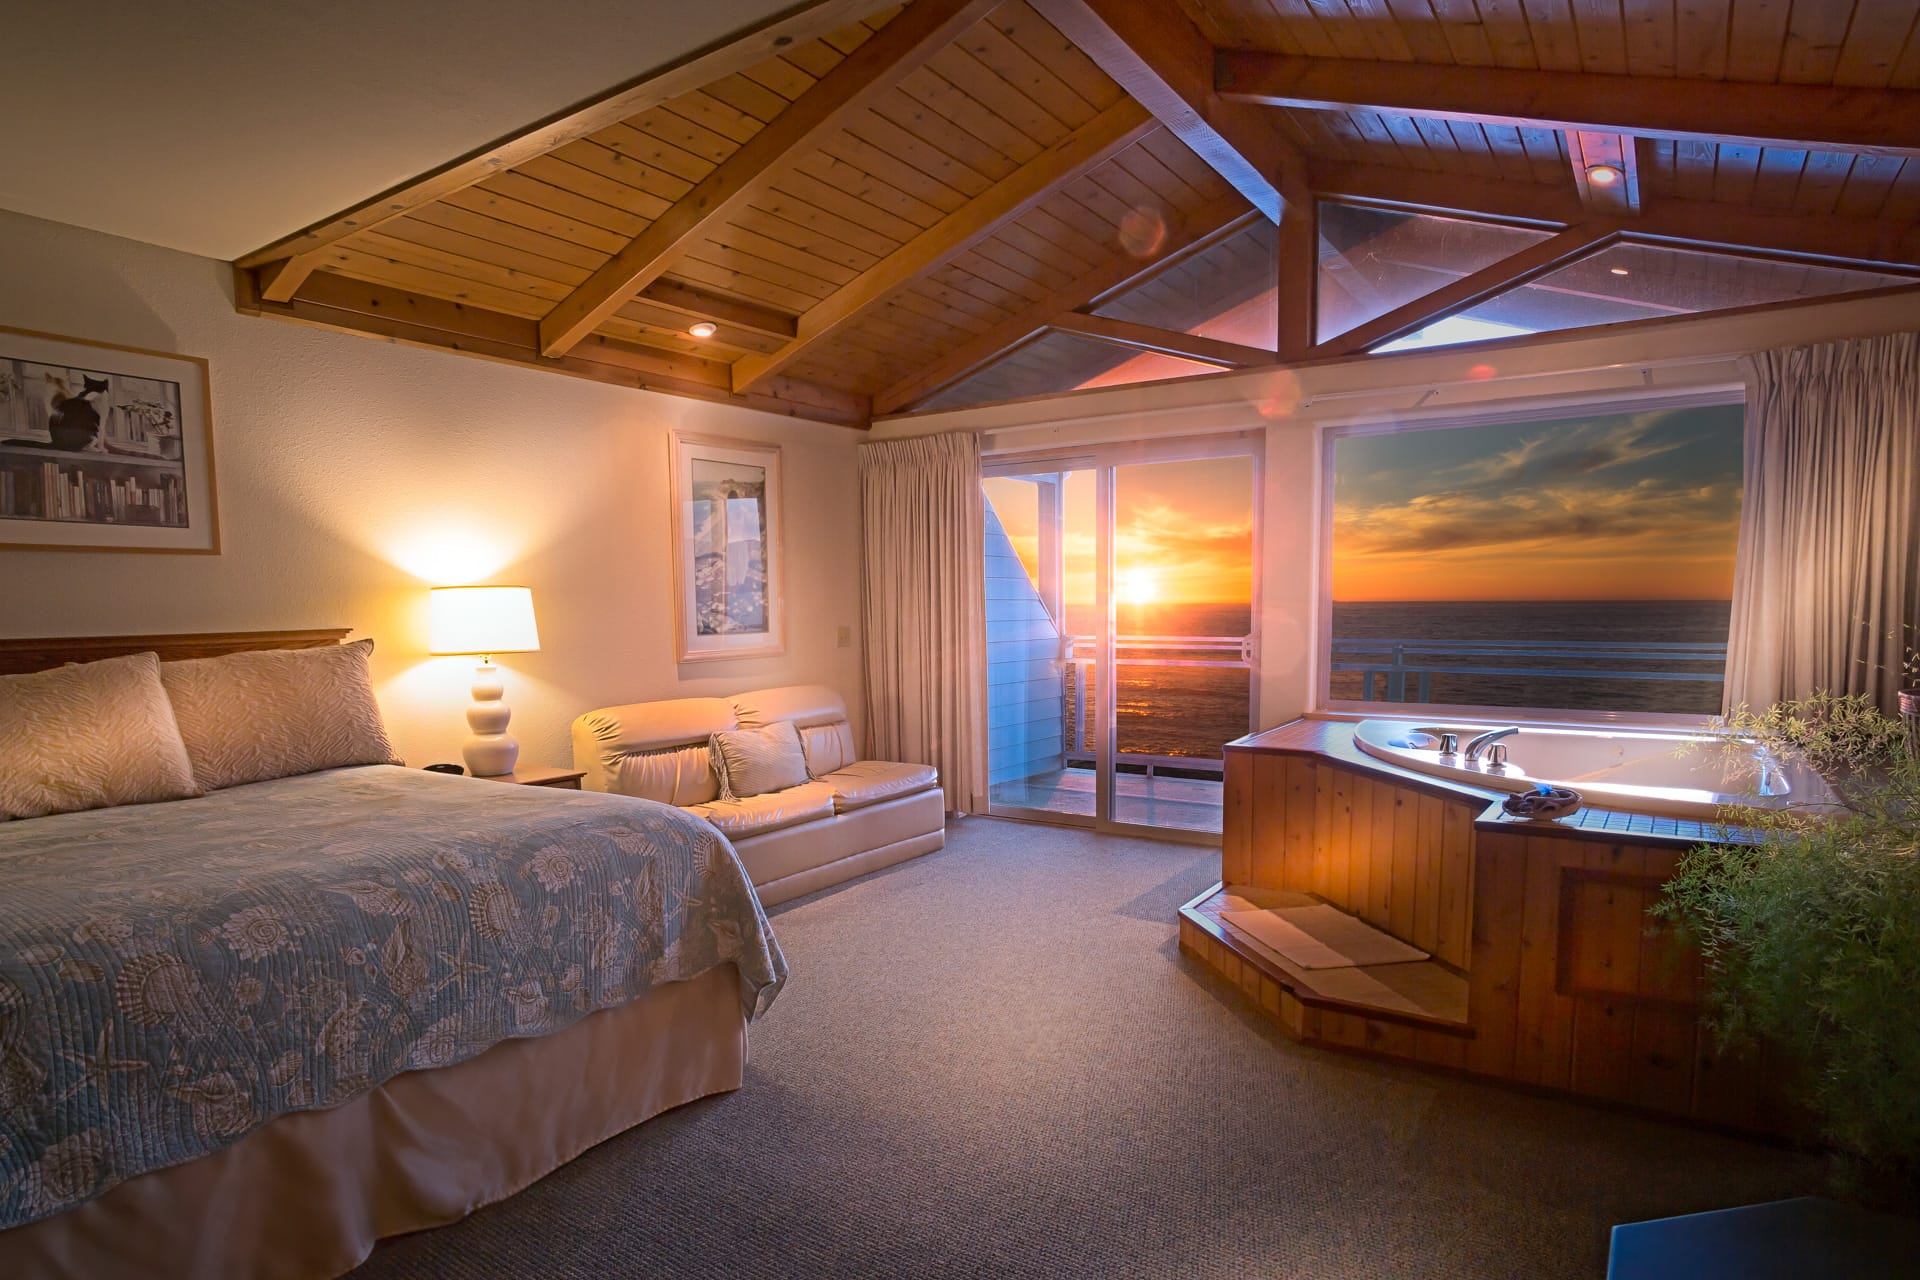 Luxury oceanfront Deluxe Spa Suite hotel room at Inn of the Lost Coast Shelter Cove. In-room hot tub positioned under exposed wood plank beam ceilings and flush against floor to ceiling windows provide an ocean sunset view from hot tub. [object object] Rooms & Suites 007 01